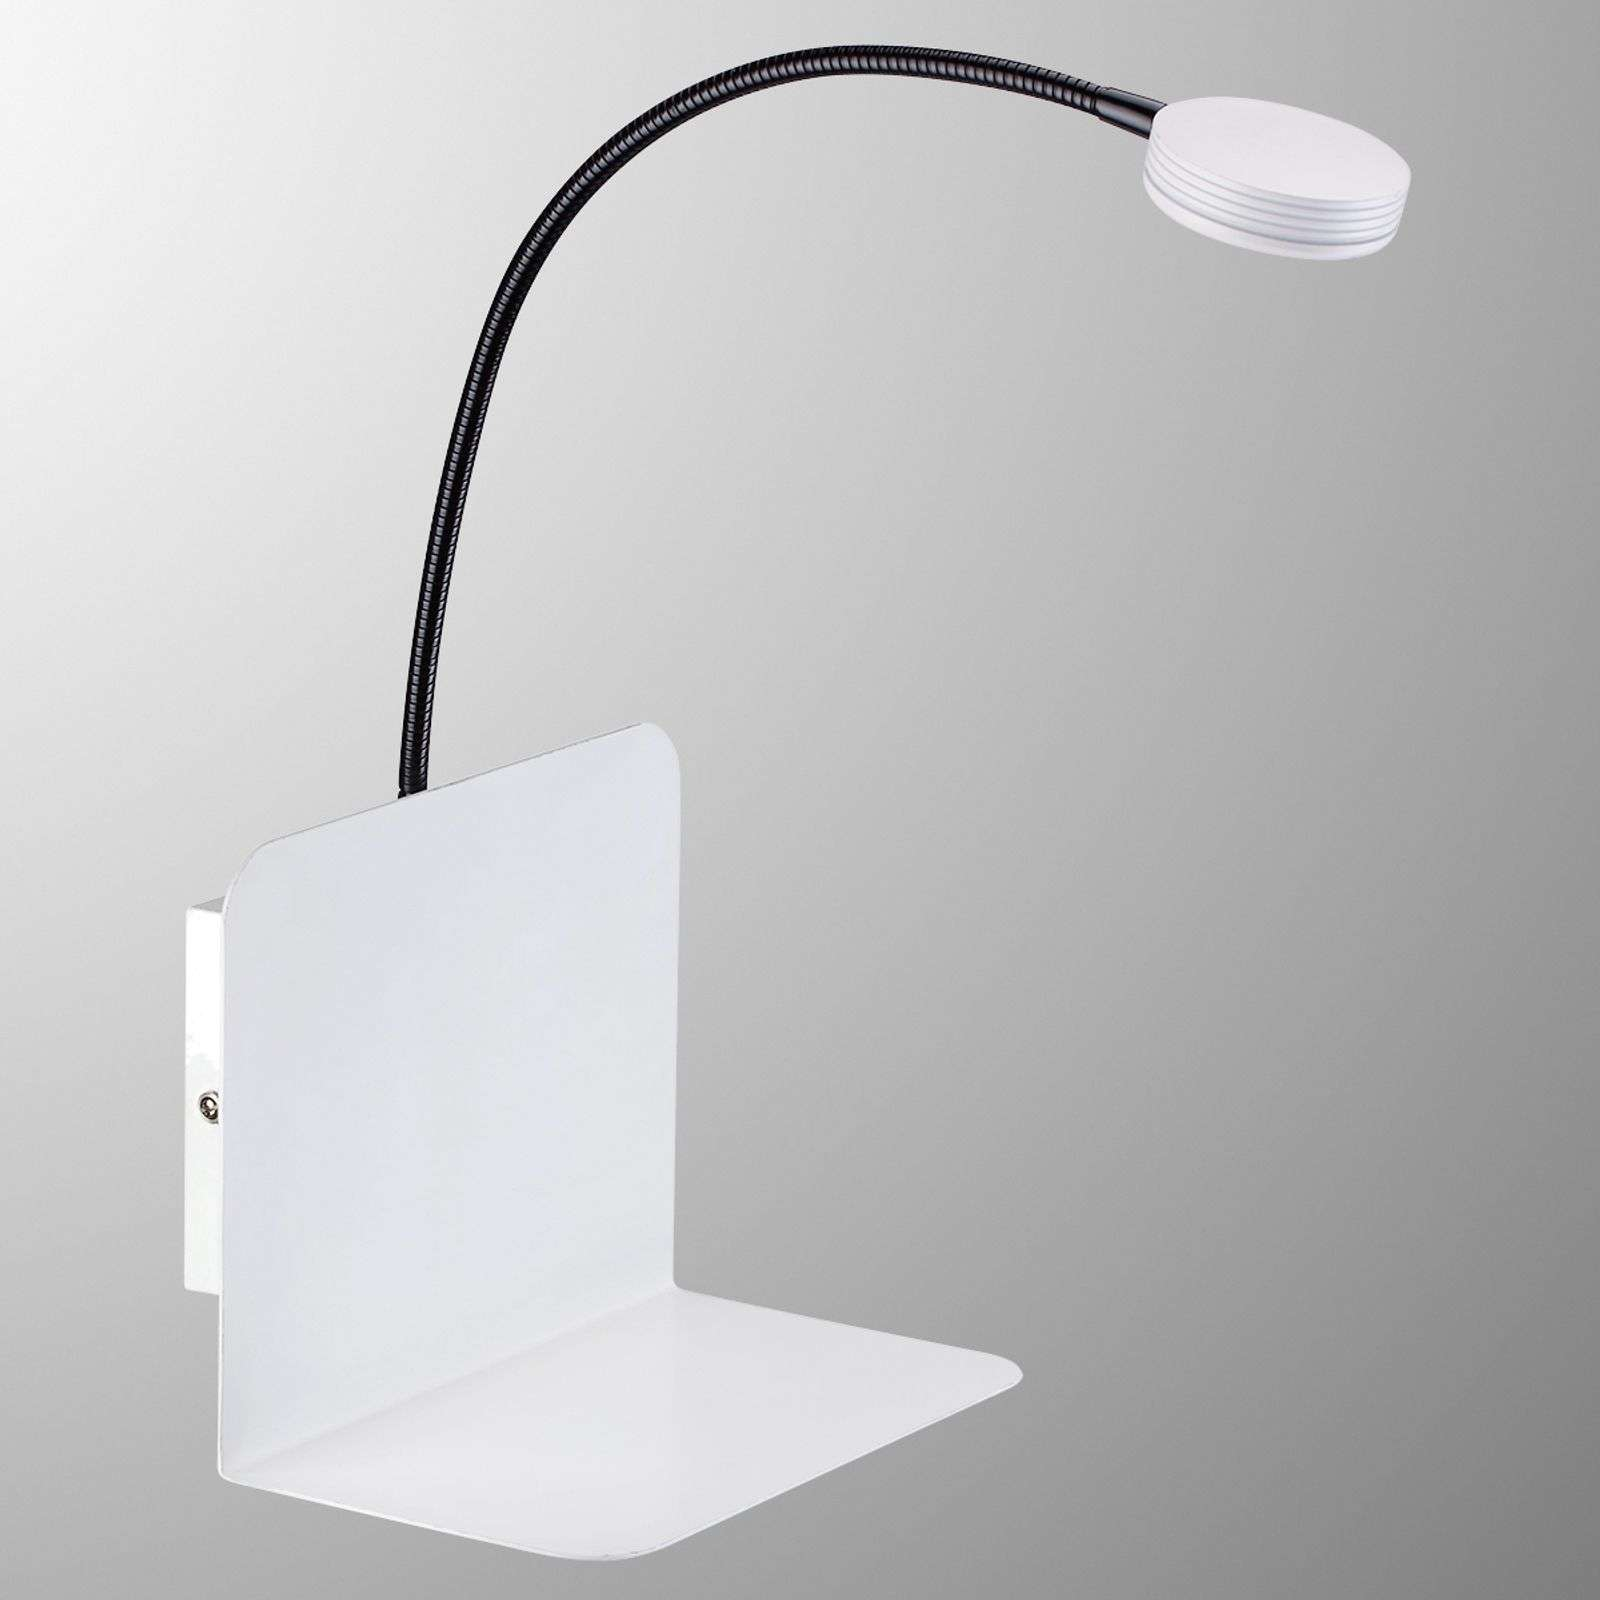 Applique LED Arles pratique, avec tablette